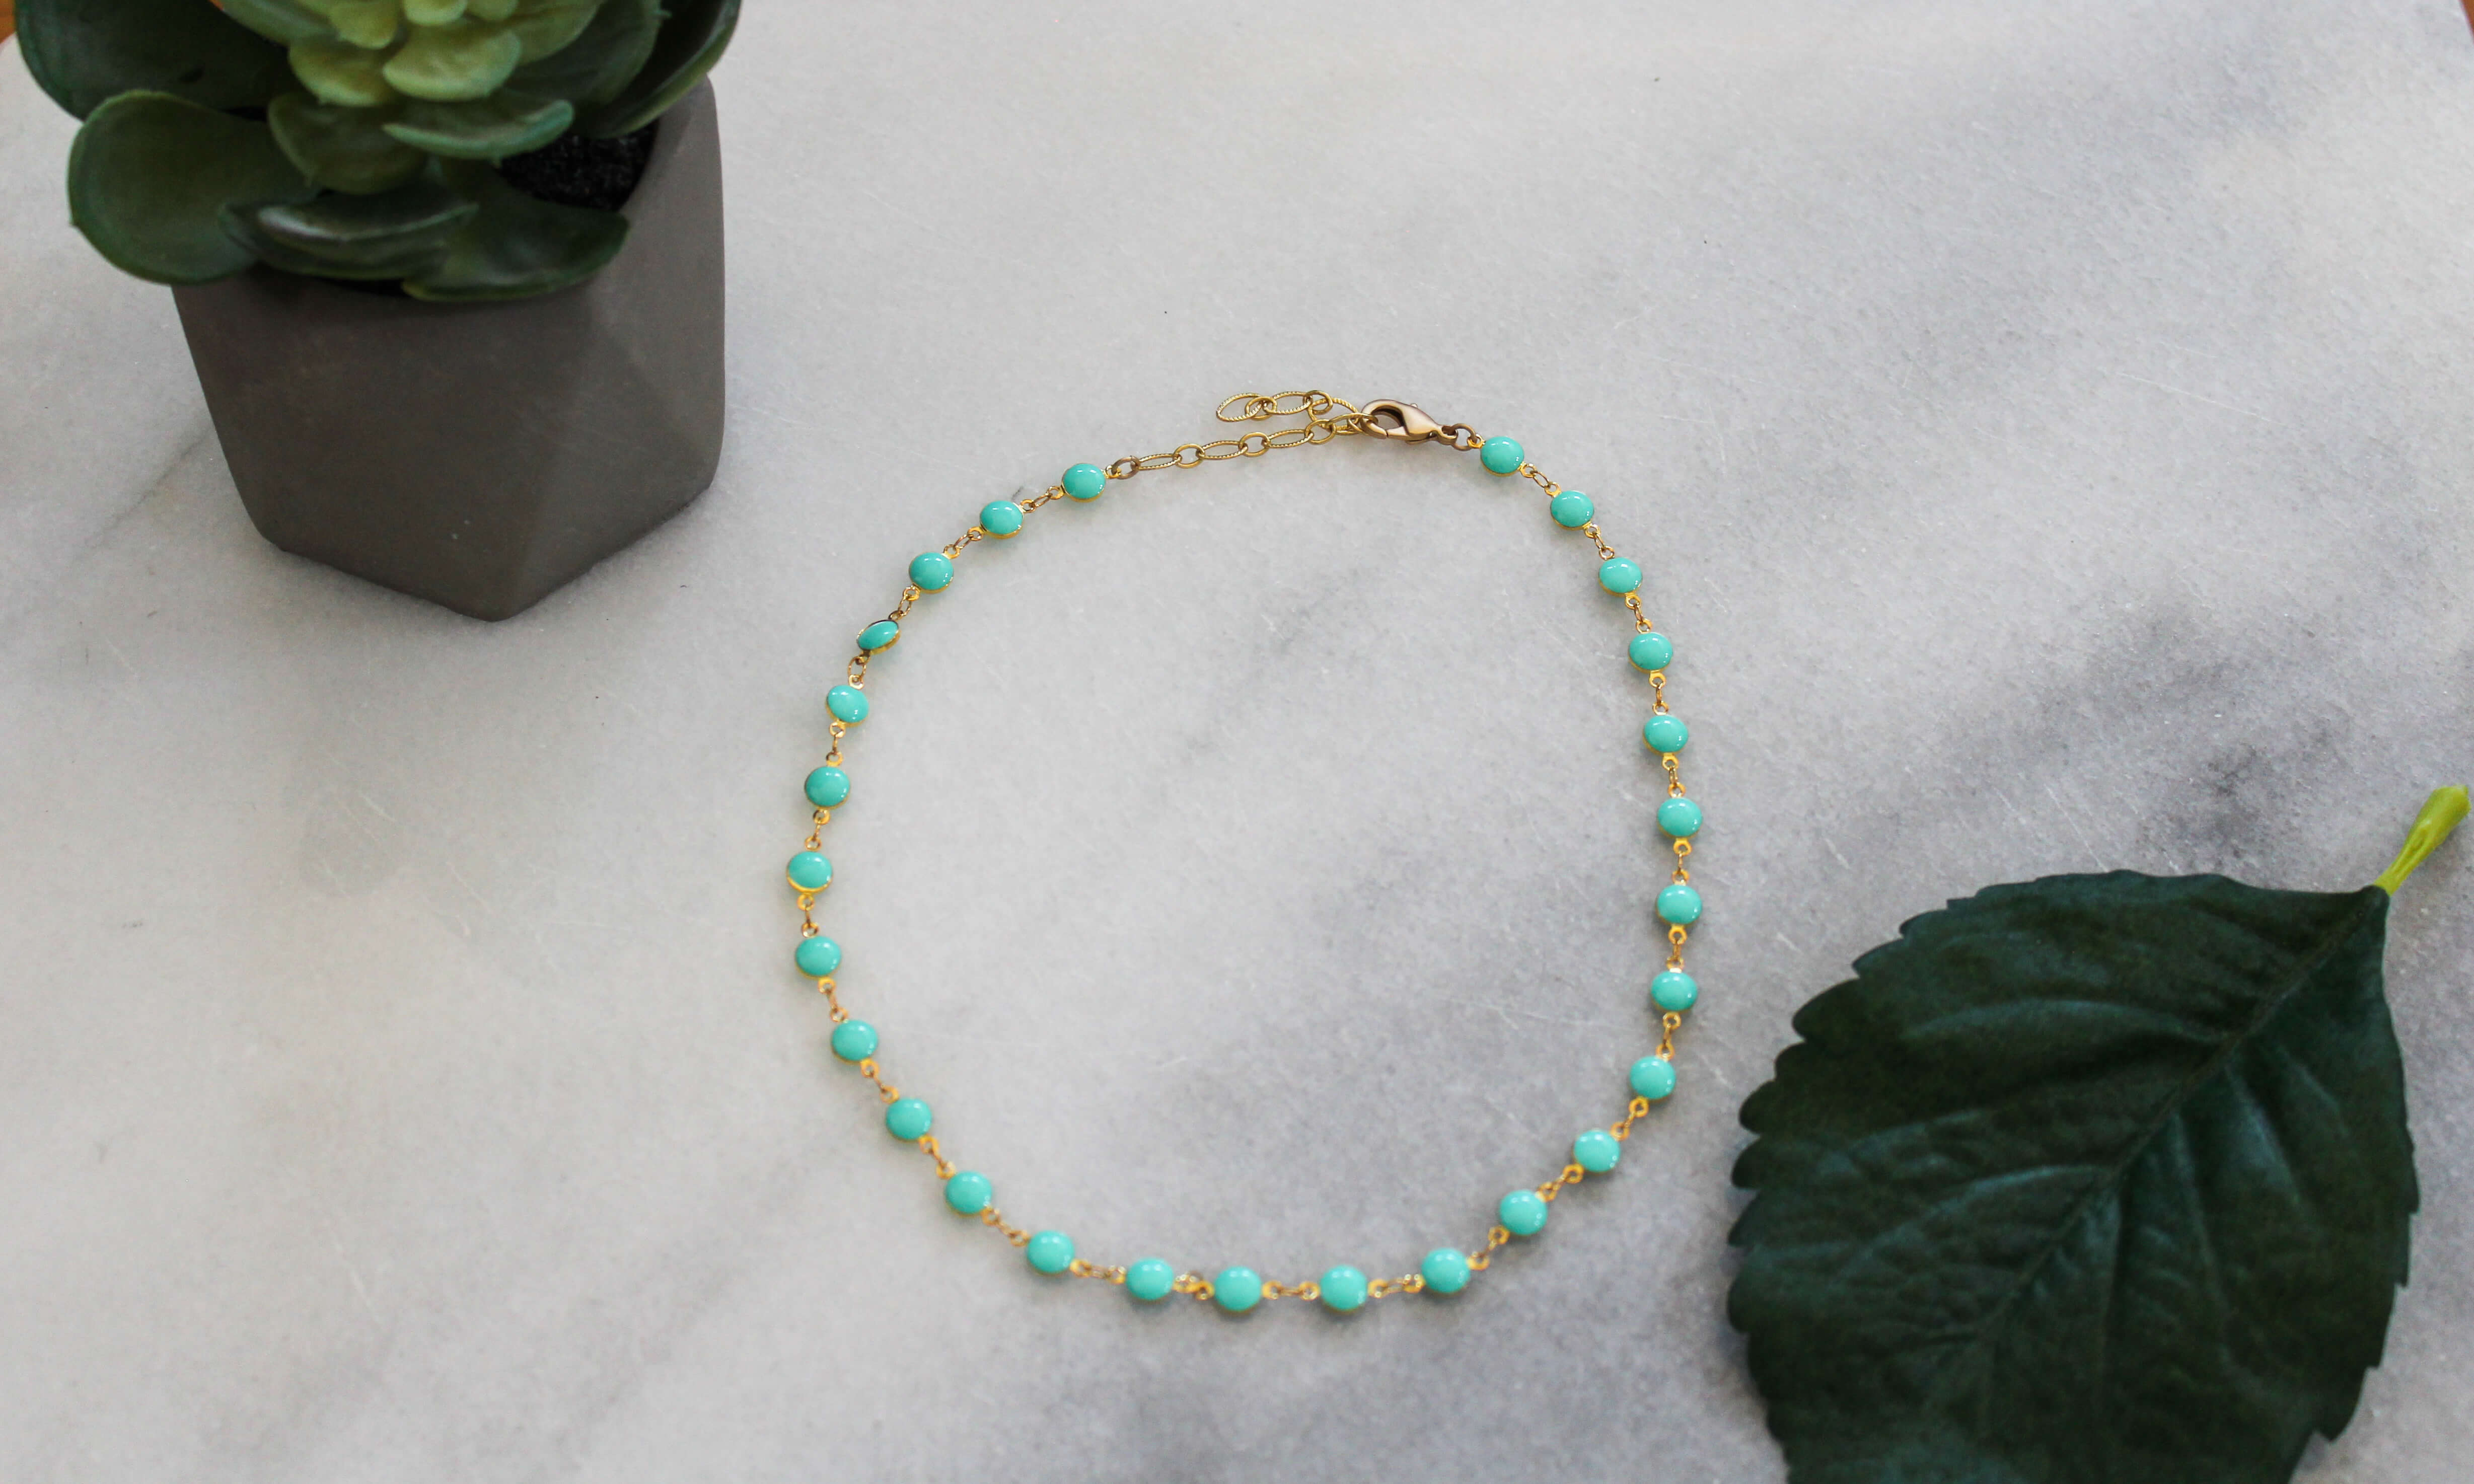 Turquoise and Gold Adjustable Necklace